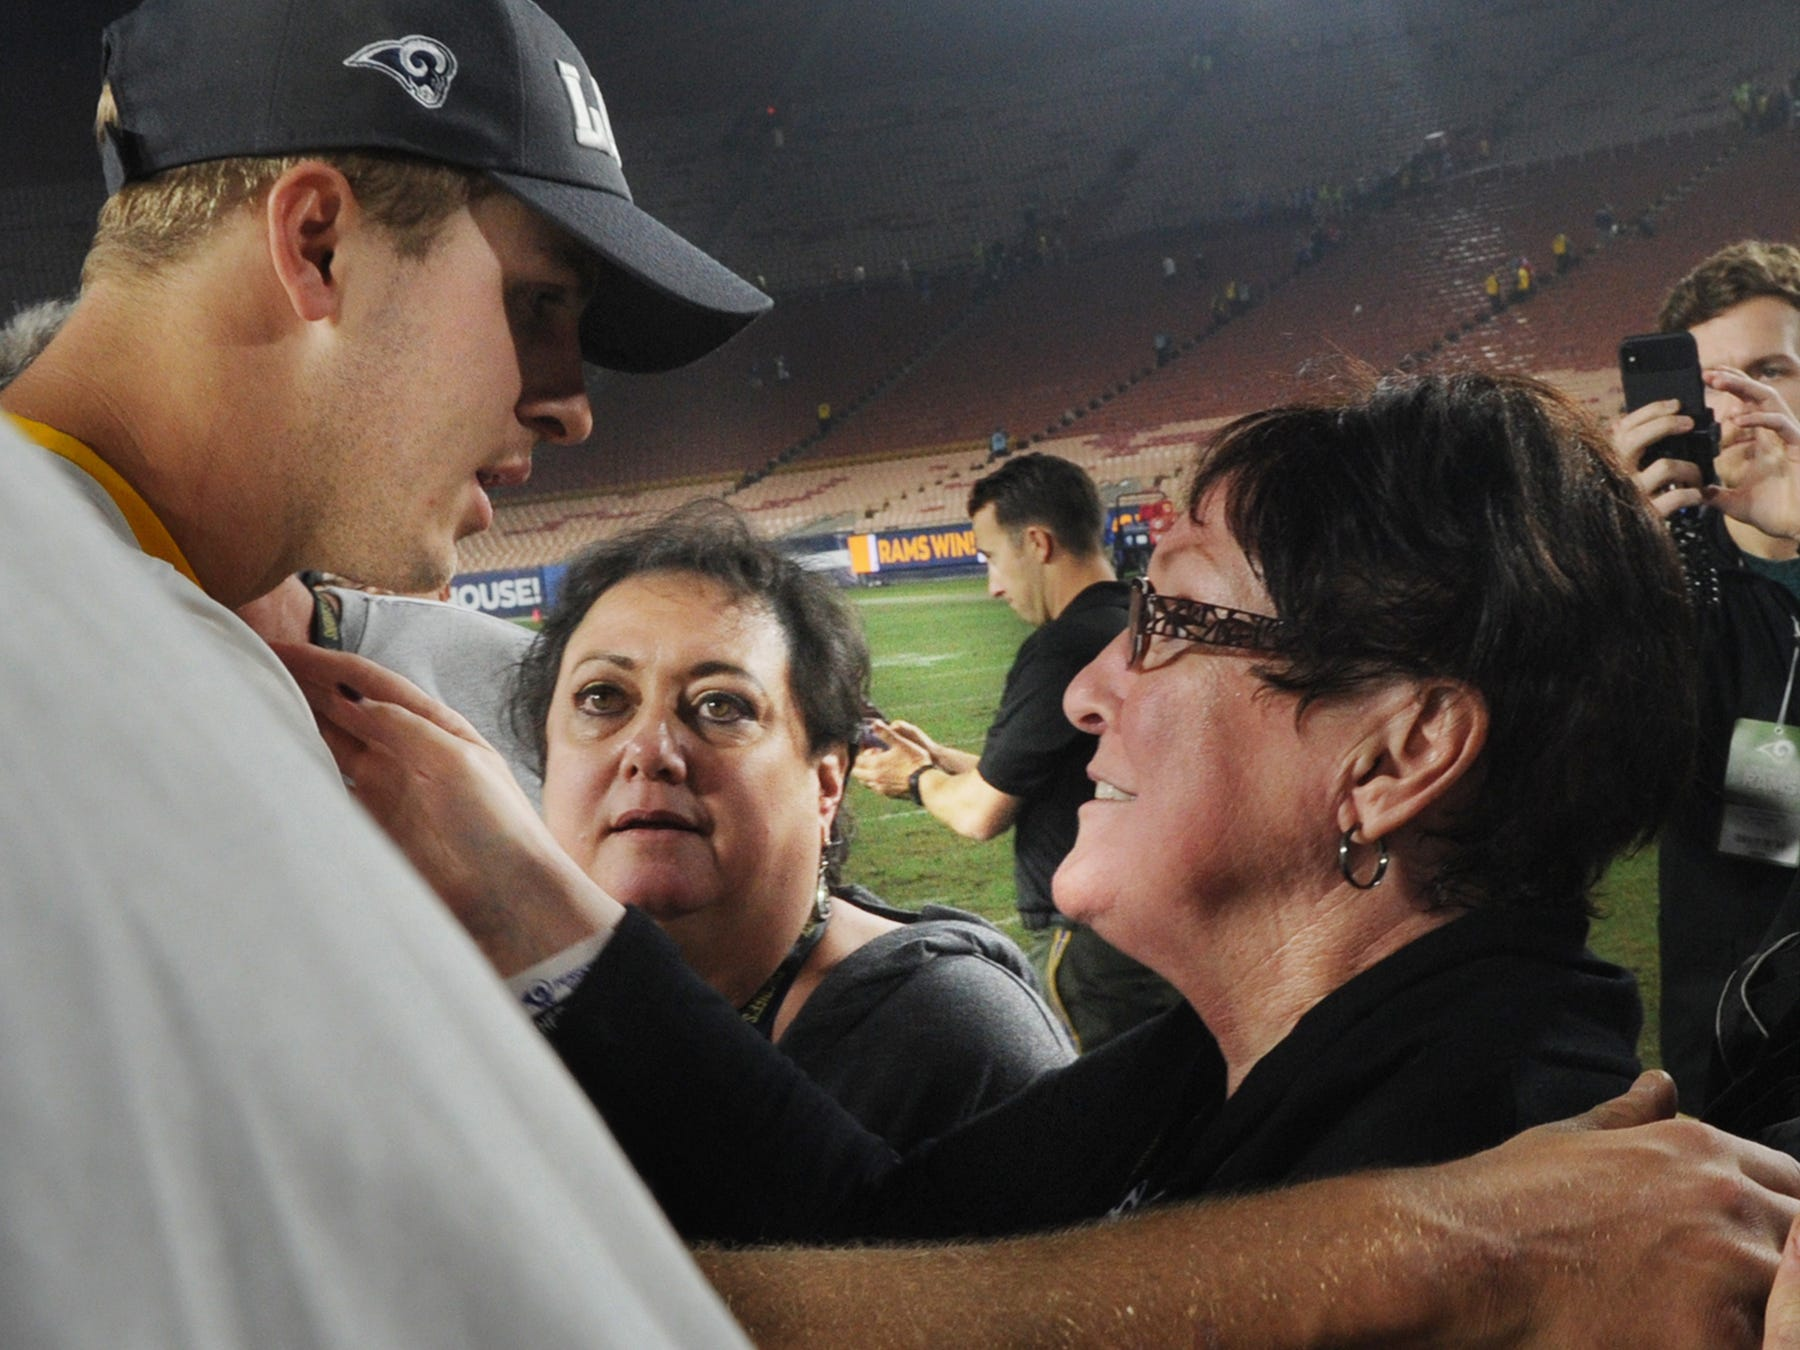 Los Angeles Rams quarterback Jared Goff, talks with Karen Helus, center, wife of Ventura County Sheriff's Department Sgt. Ron Helus, and Pam Archie, right, Karen's mother, after Monday night's game against the Kansas City Chiefs at the Coliseum. Sgt. Helus was killed in the Borderline Bar & Grill shooting. The Rams honored the family of the victims and also the first responders to the shooting and recent wildfires.